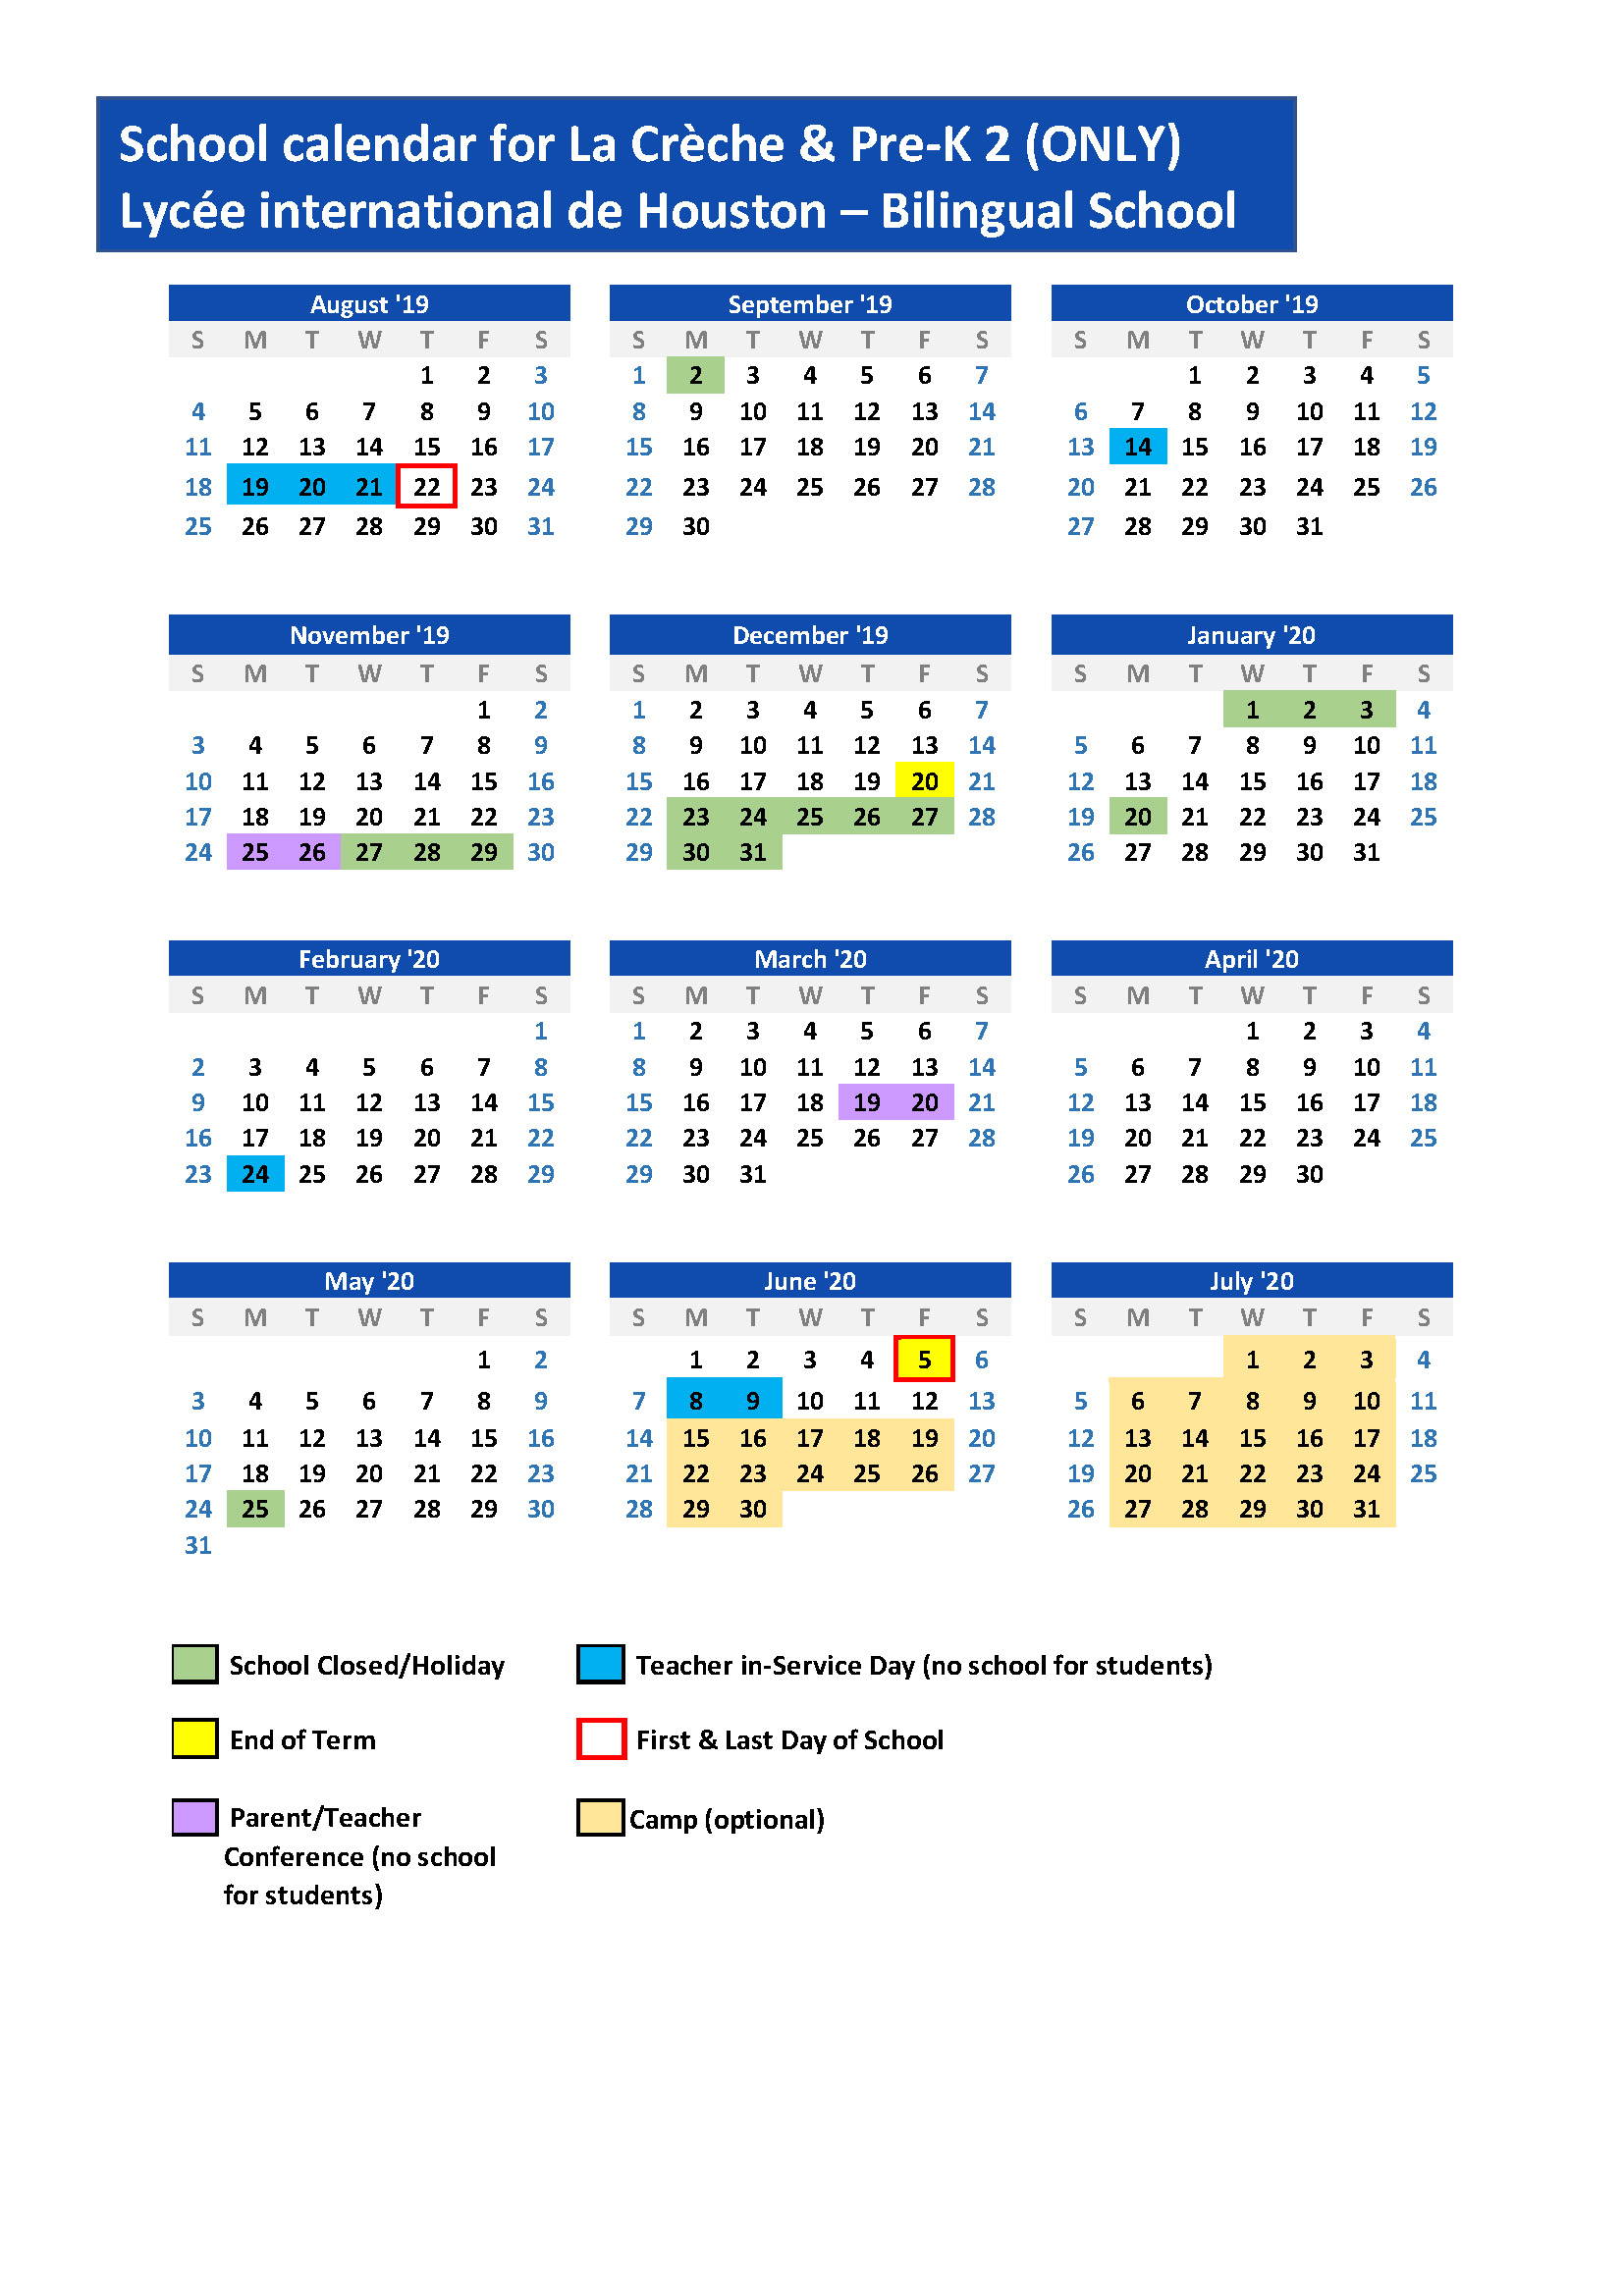 Tps Calendar.Calendar Lycee International De Houston